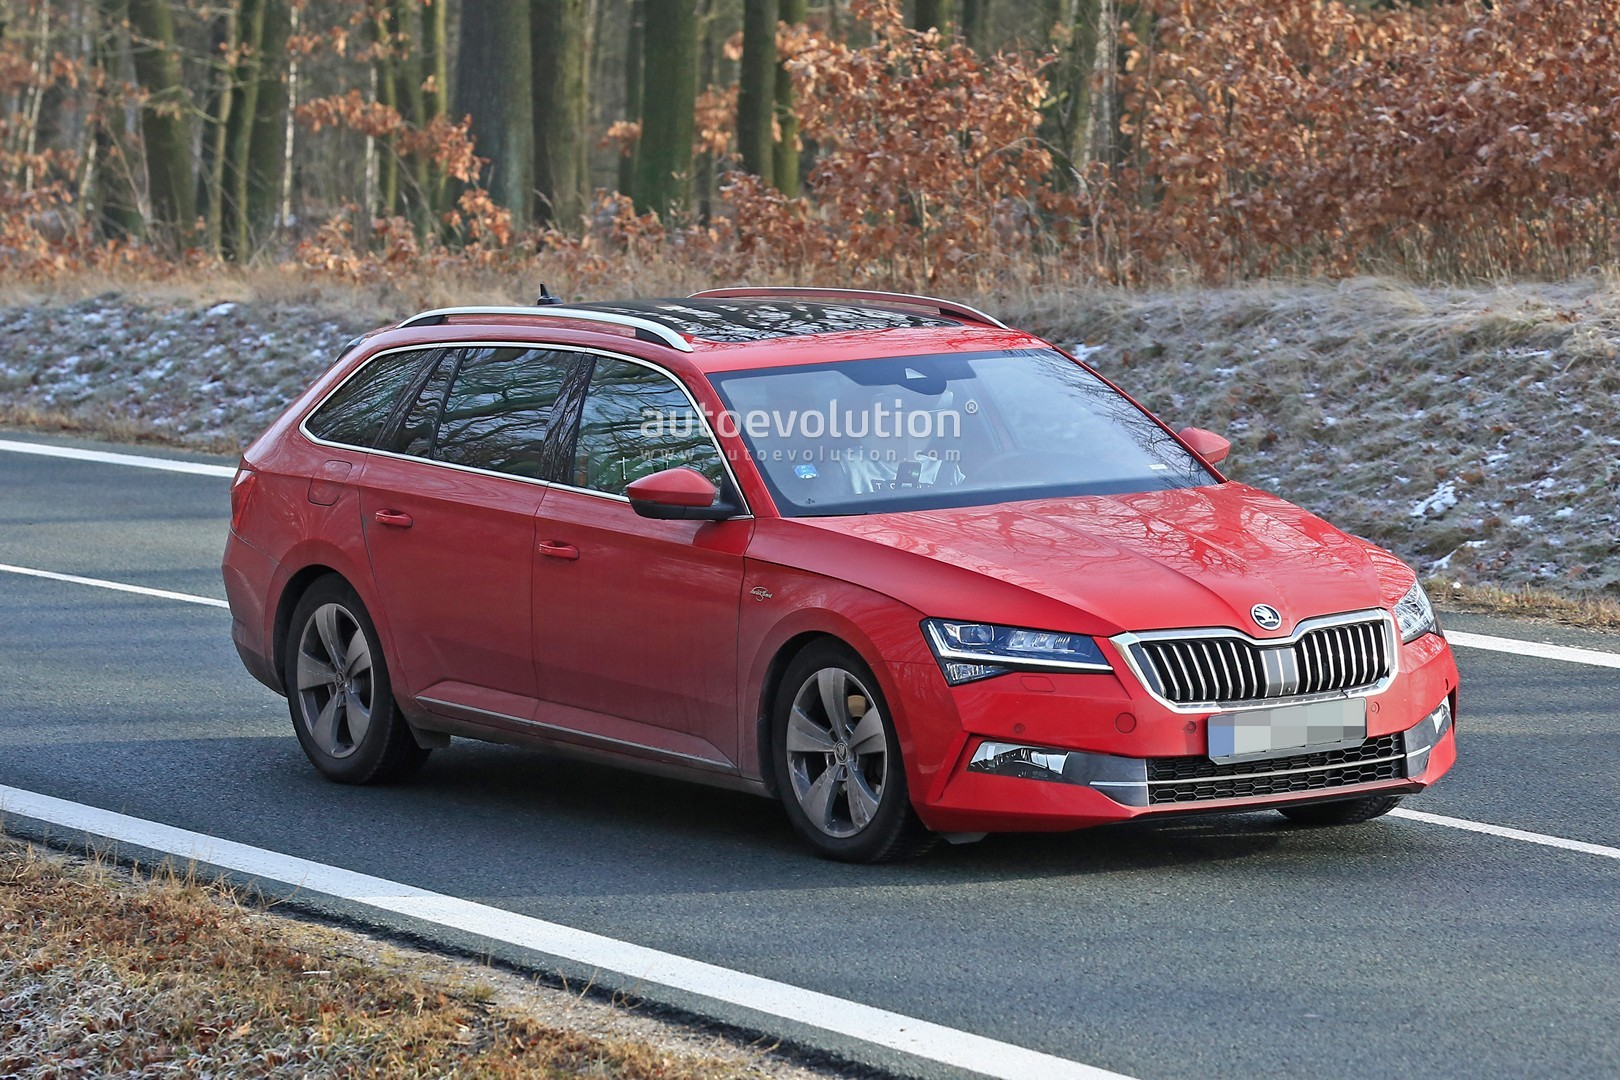 92 The Best 2020 Skoda Superb Configurations